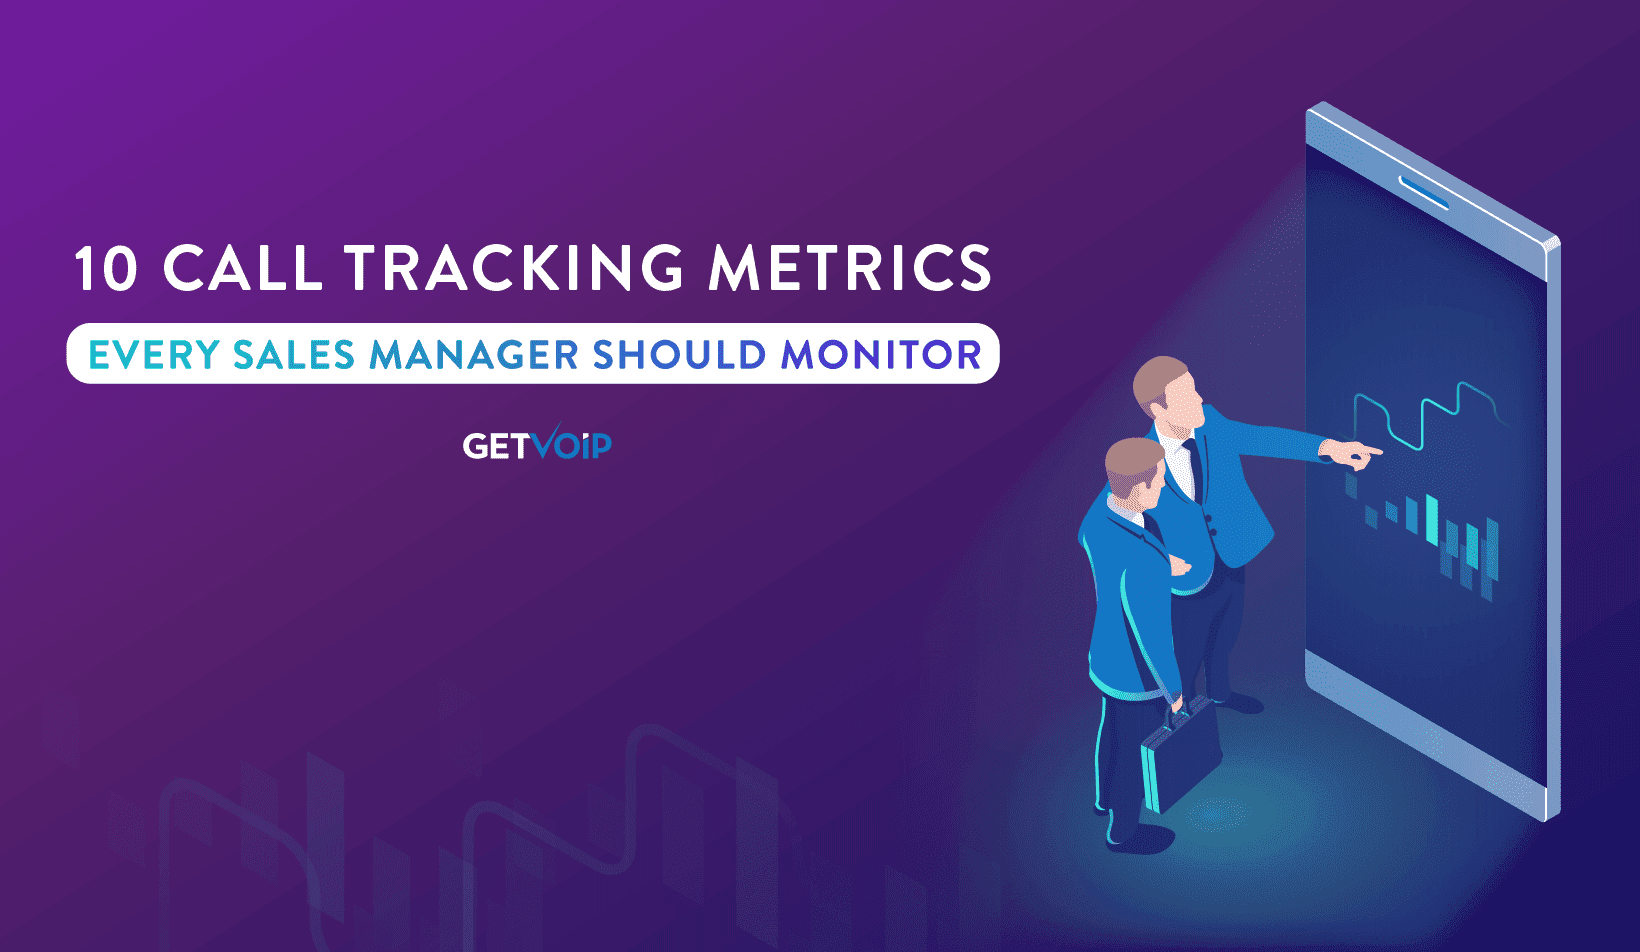 10 Call Tracking Metrics that Every Sales Manager Should Monitor